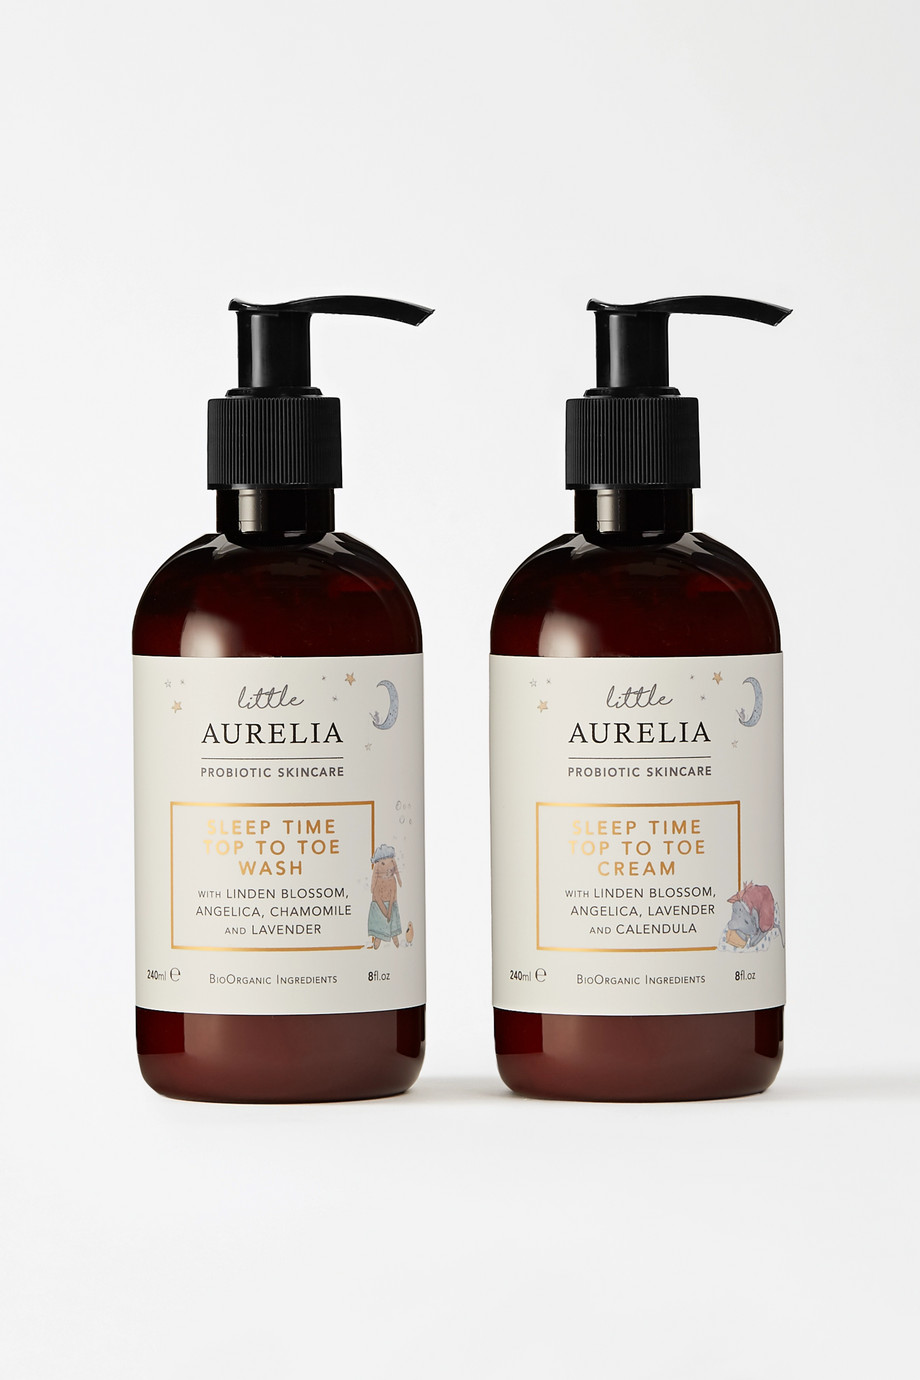 Aurelia Probiotic Skincare Little Aurelia Sleep Time Top to Toe Wash & Cream, 2 x 240ml